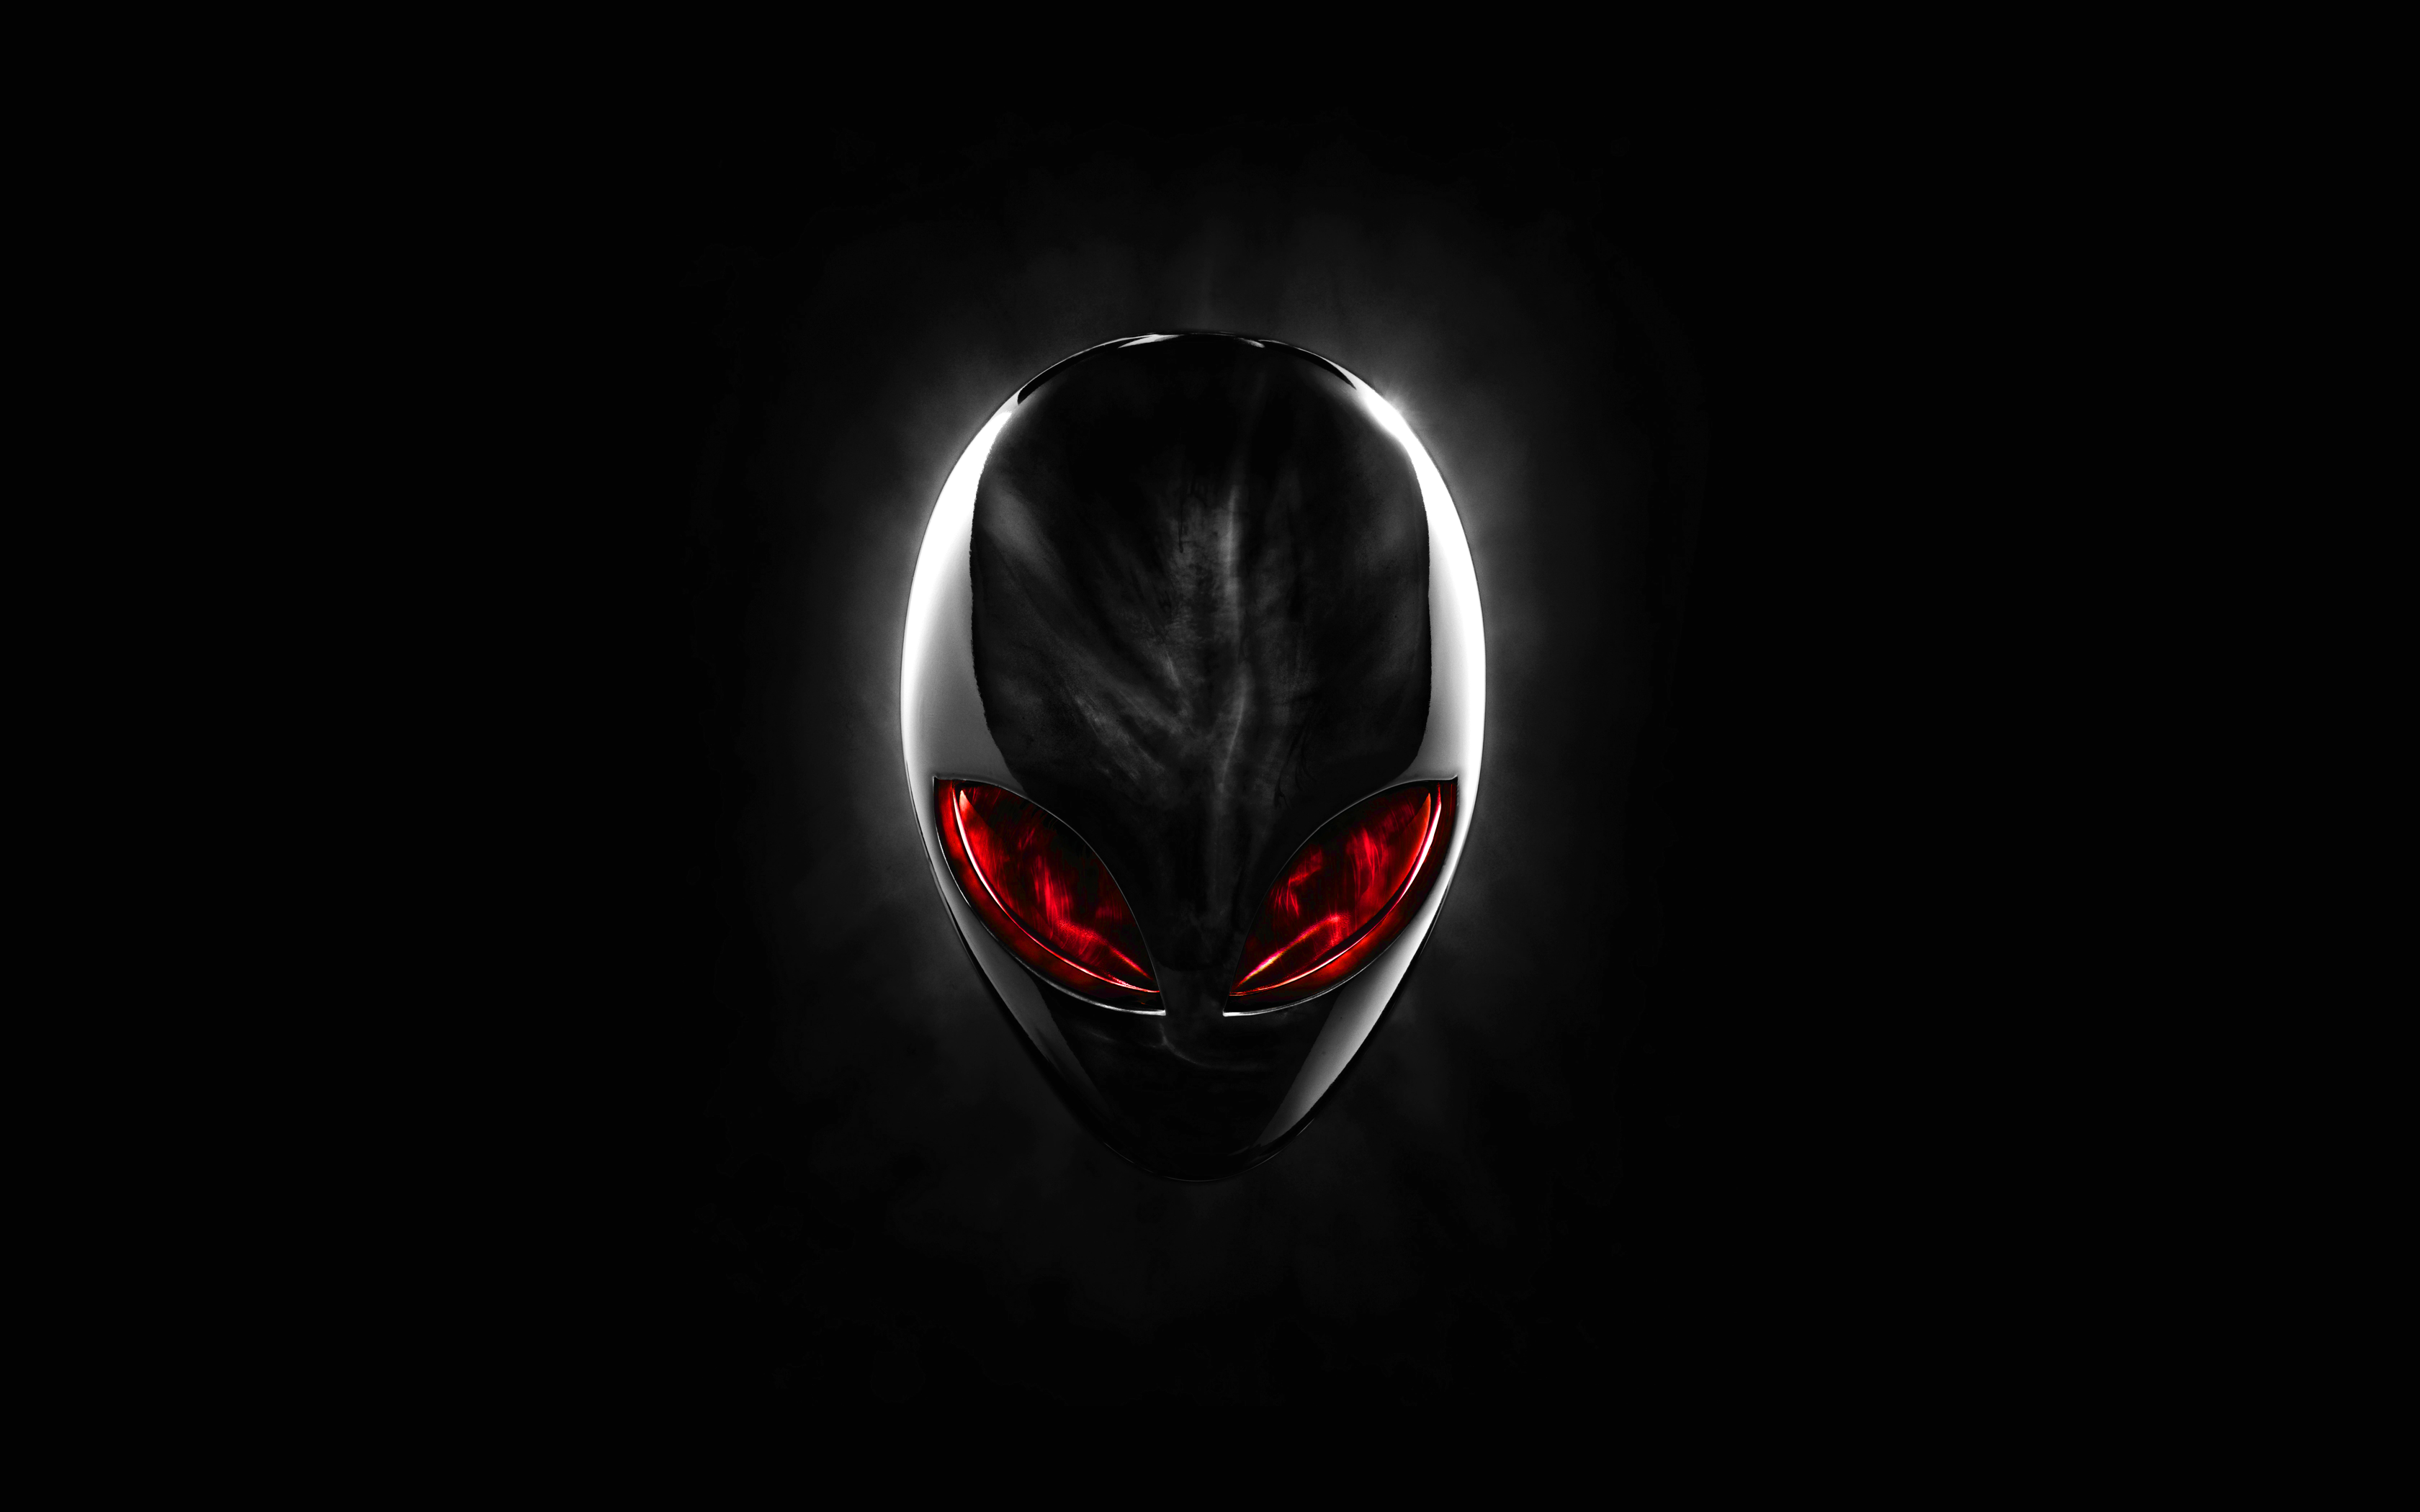 126 Alienware HD Wallpapers | Background Images - Wallpaper Abyss for Ufo Black Background  177nar